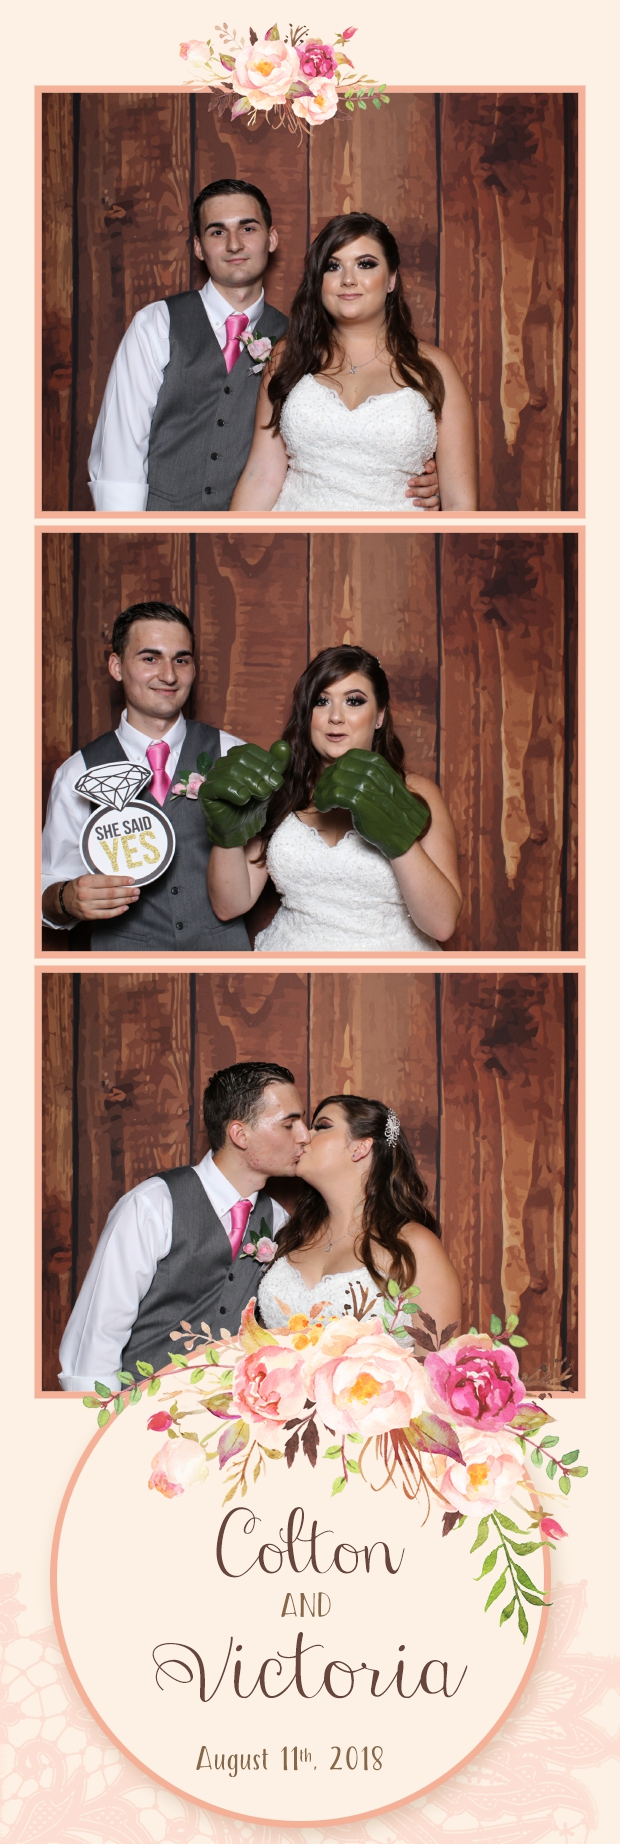 Quinlan photo booth